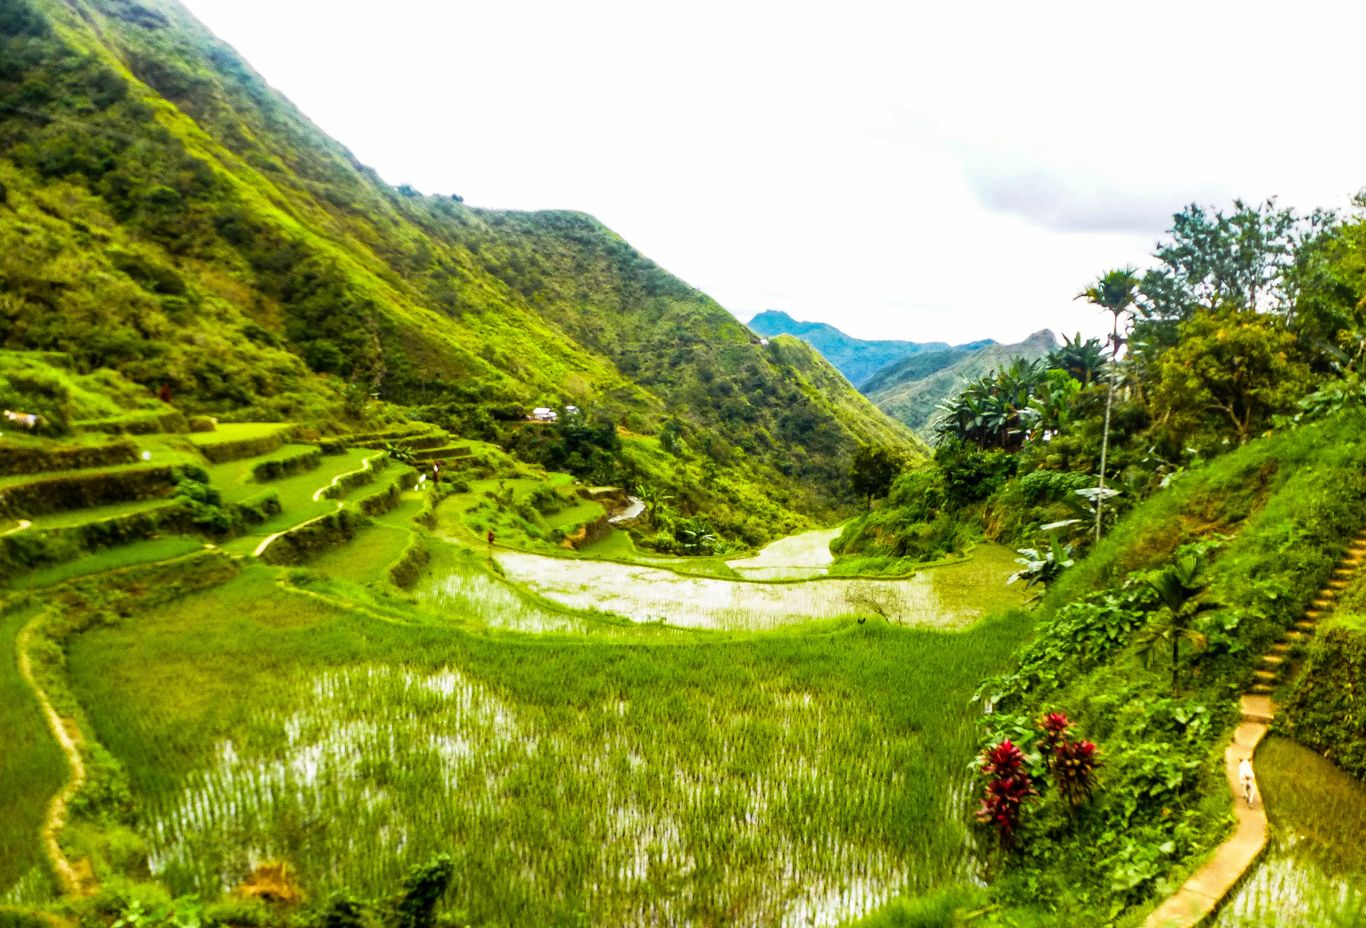 Crops grow on verdant rice terraces carved on the slope of a mountain